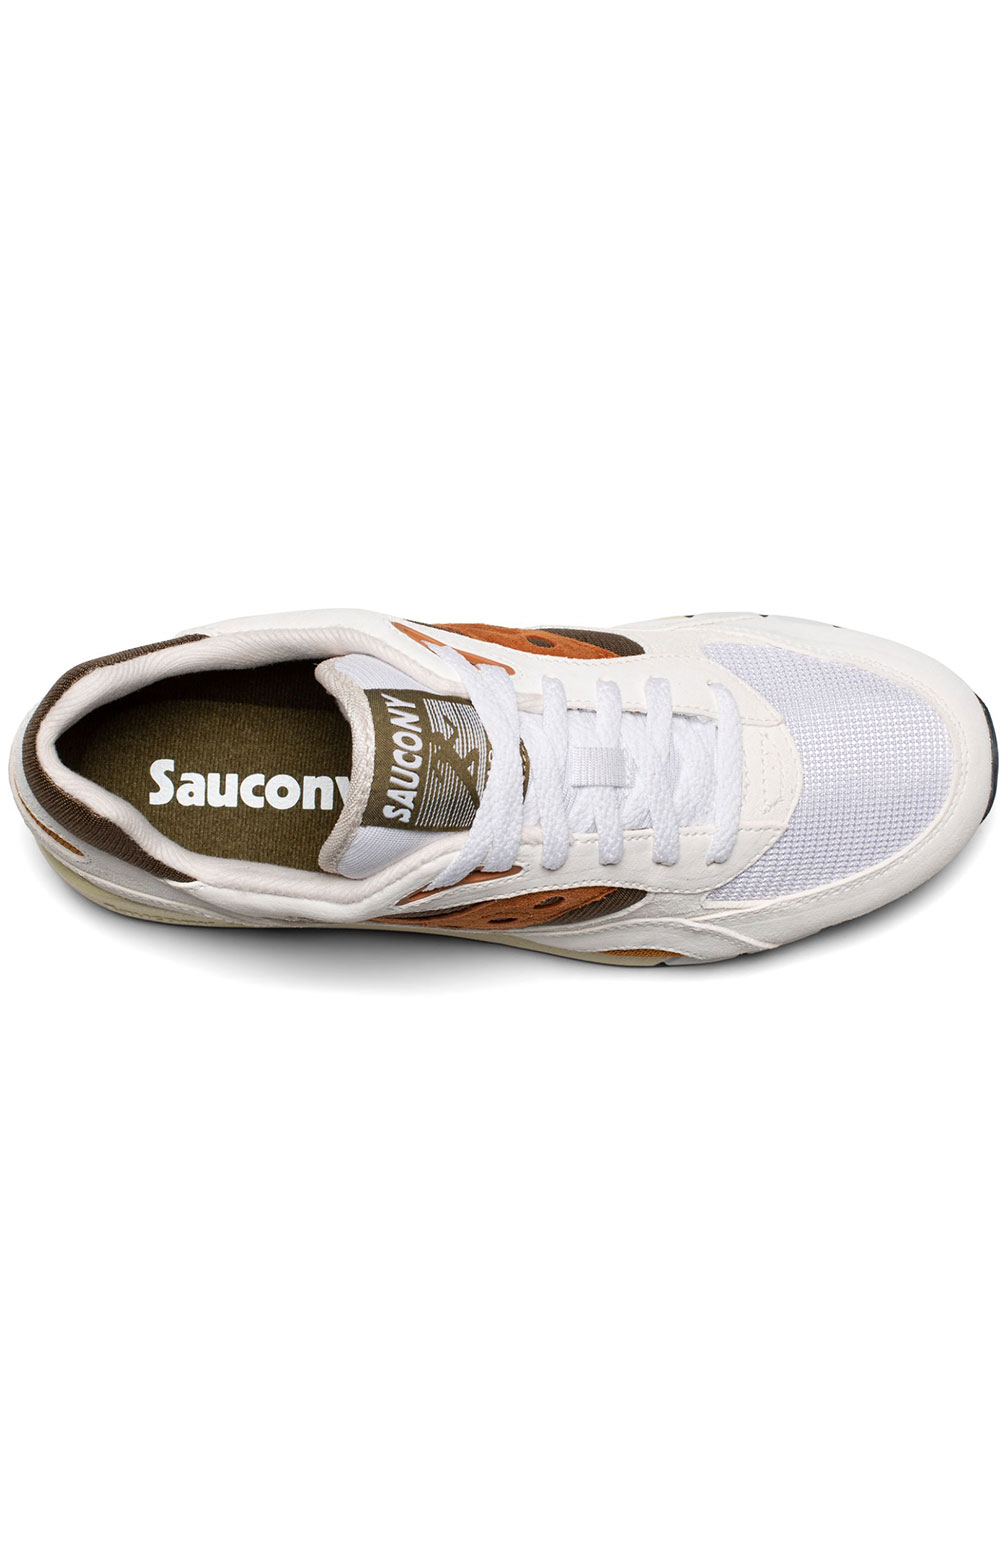 (S70441-14) Shadow 6000 Shoes - White/Rust 3